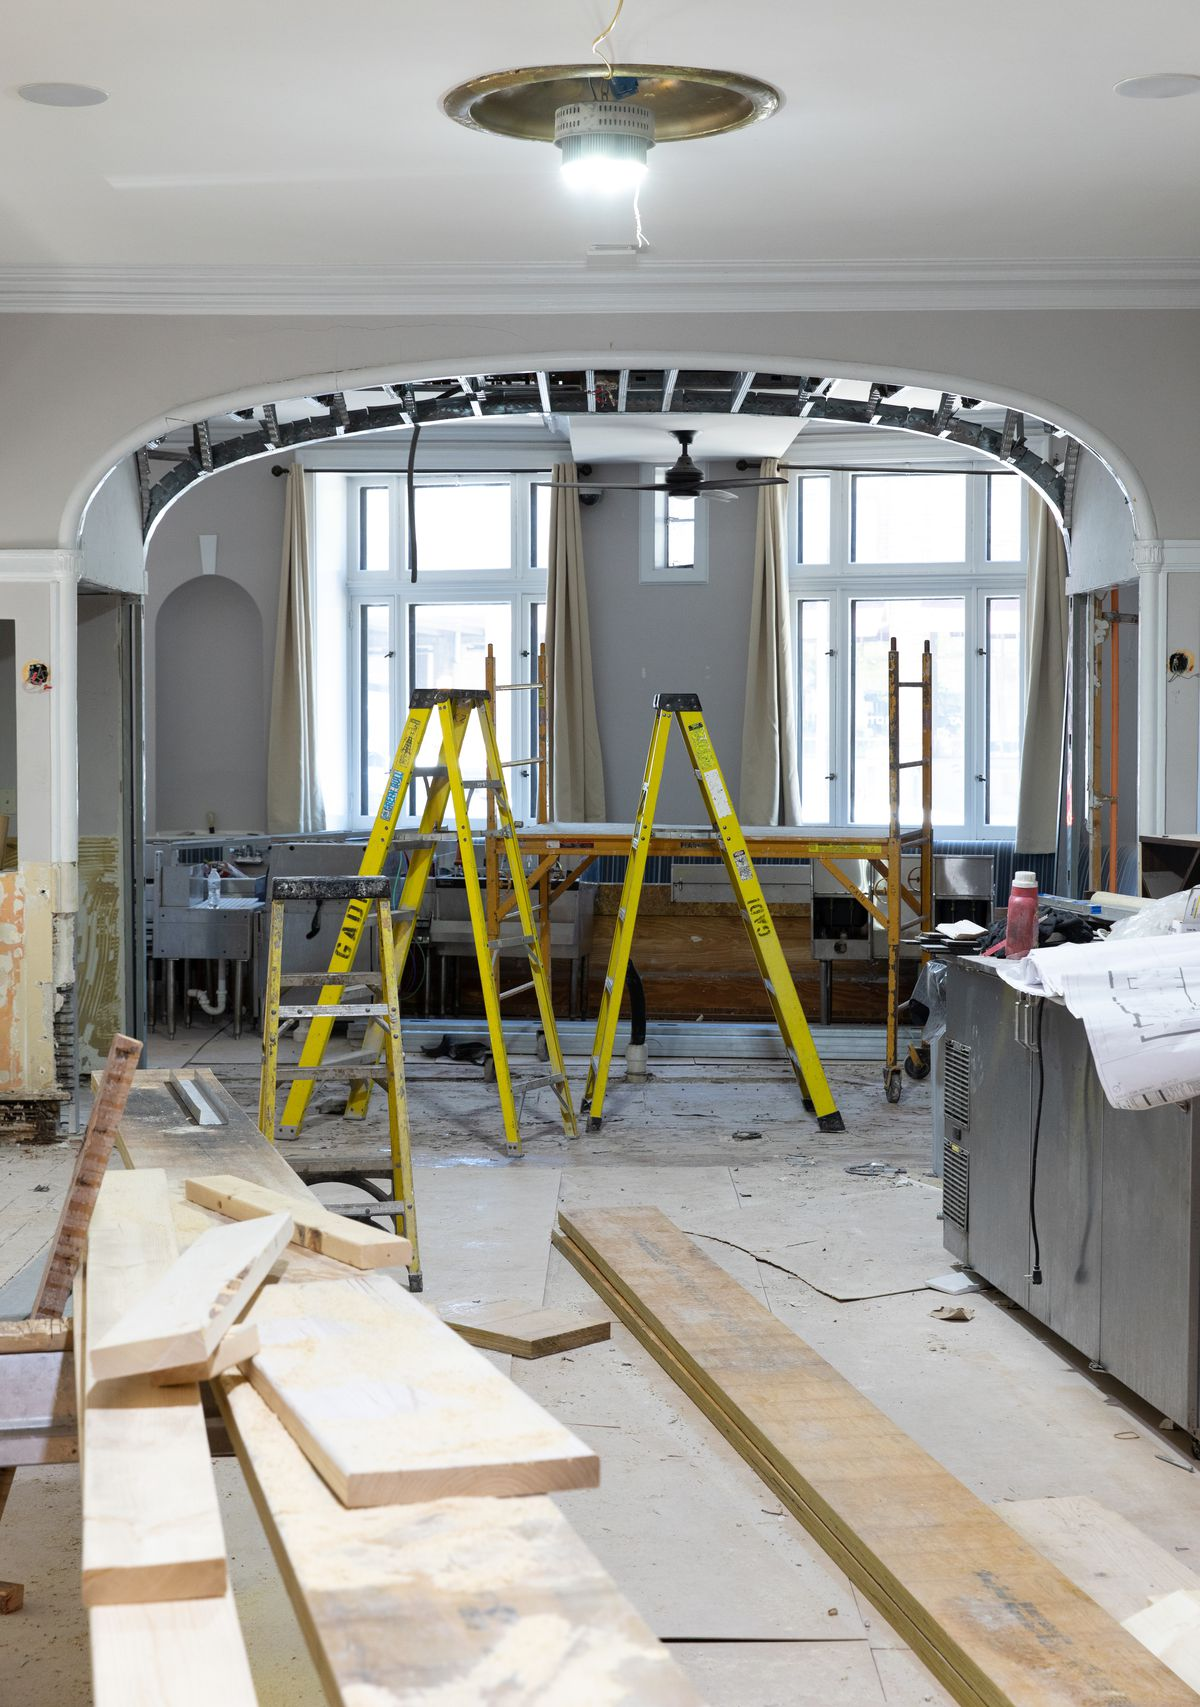 An under-construction room with exposed drywall has two bright yellow ladders in the center. An exposed arch leads to a street view.